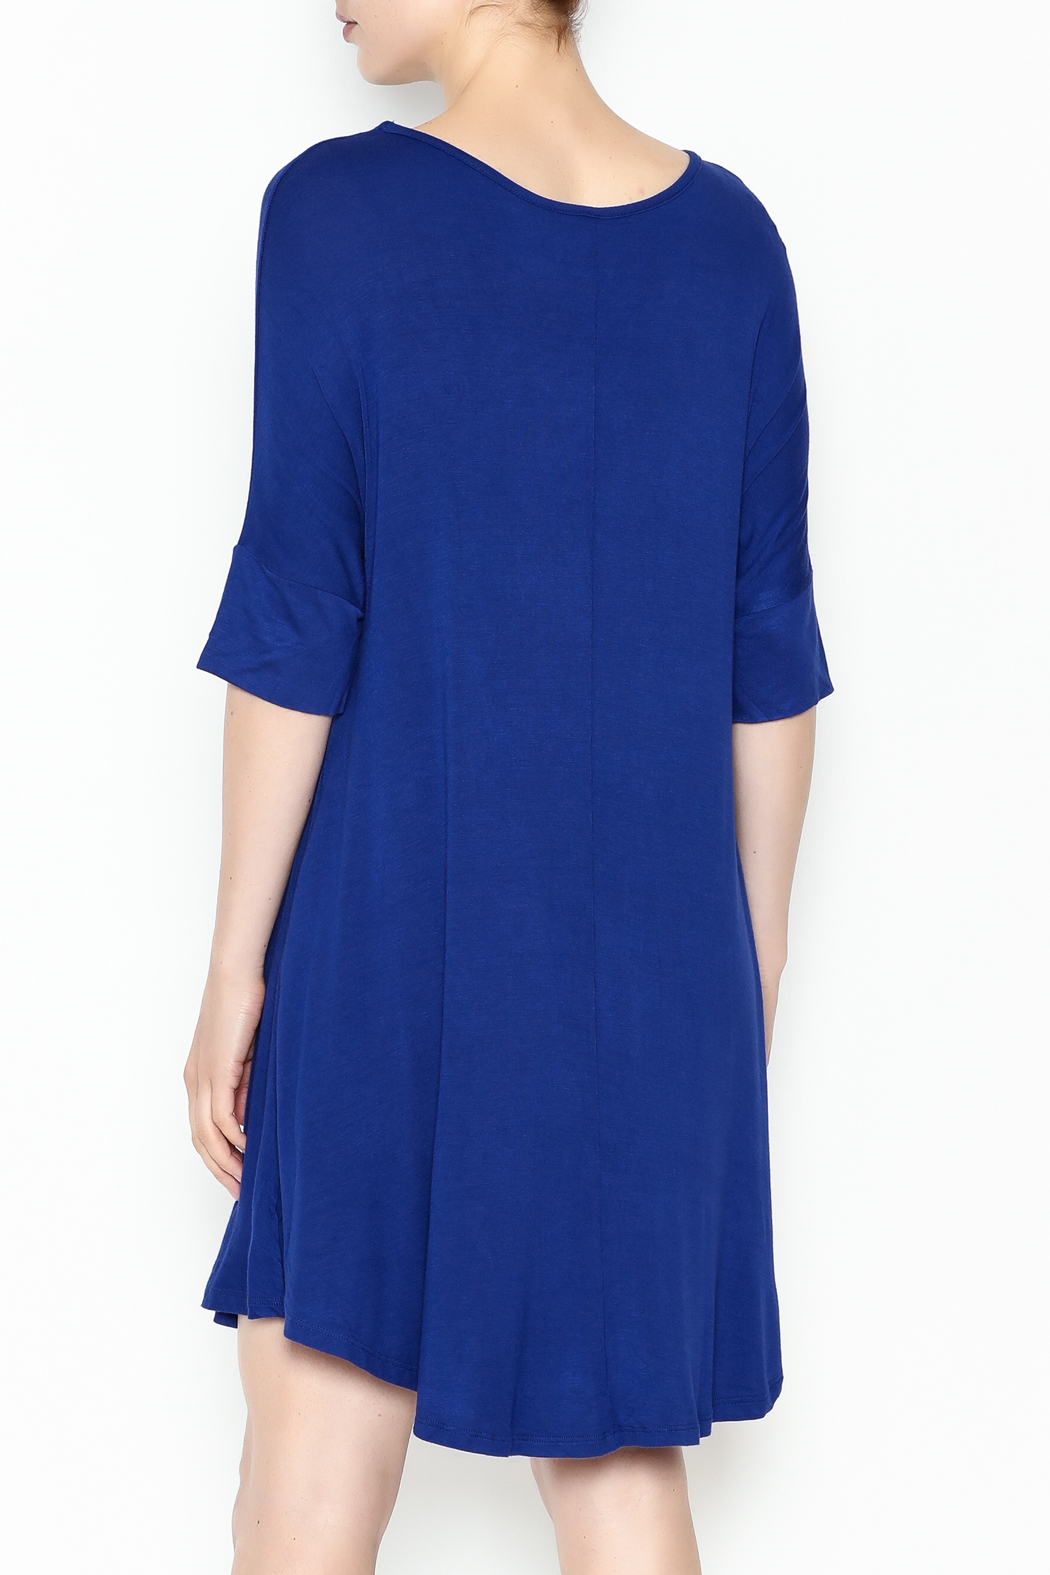 Umgee USA Royal Blue Tee Dress - Back Cropped Image